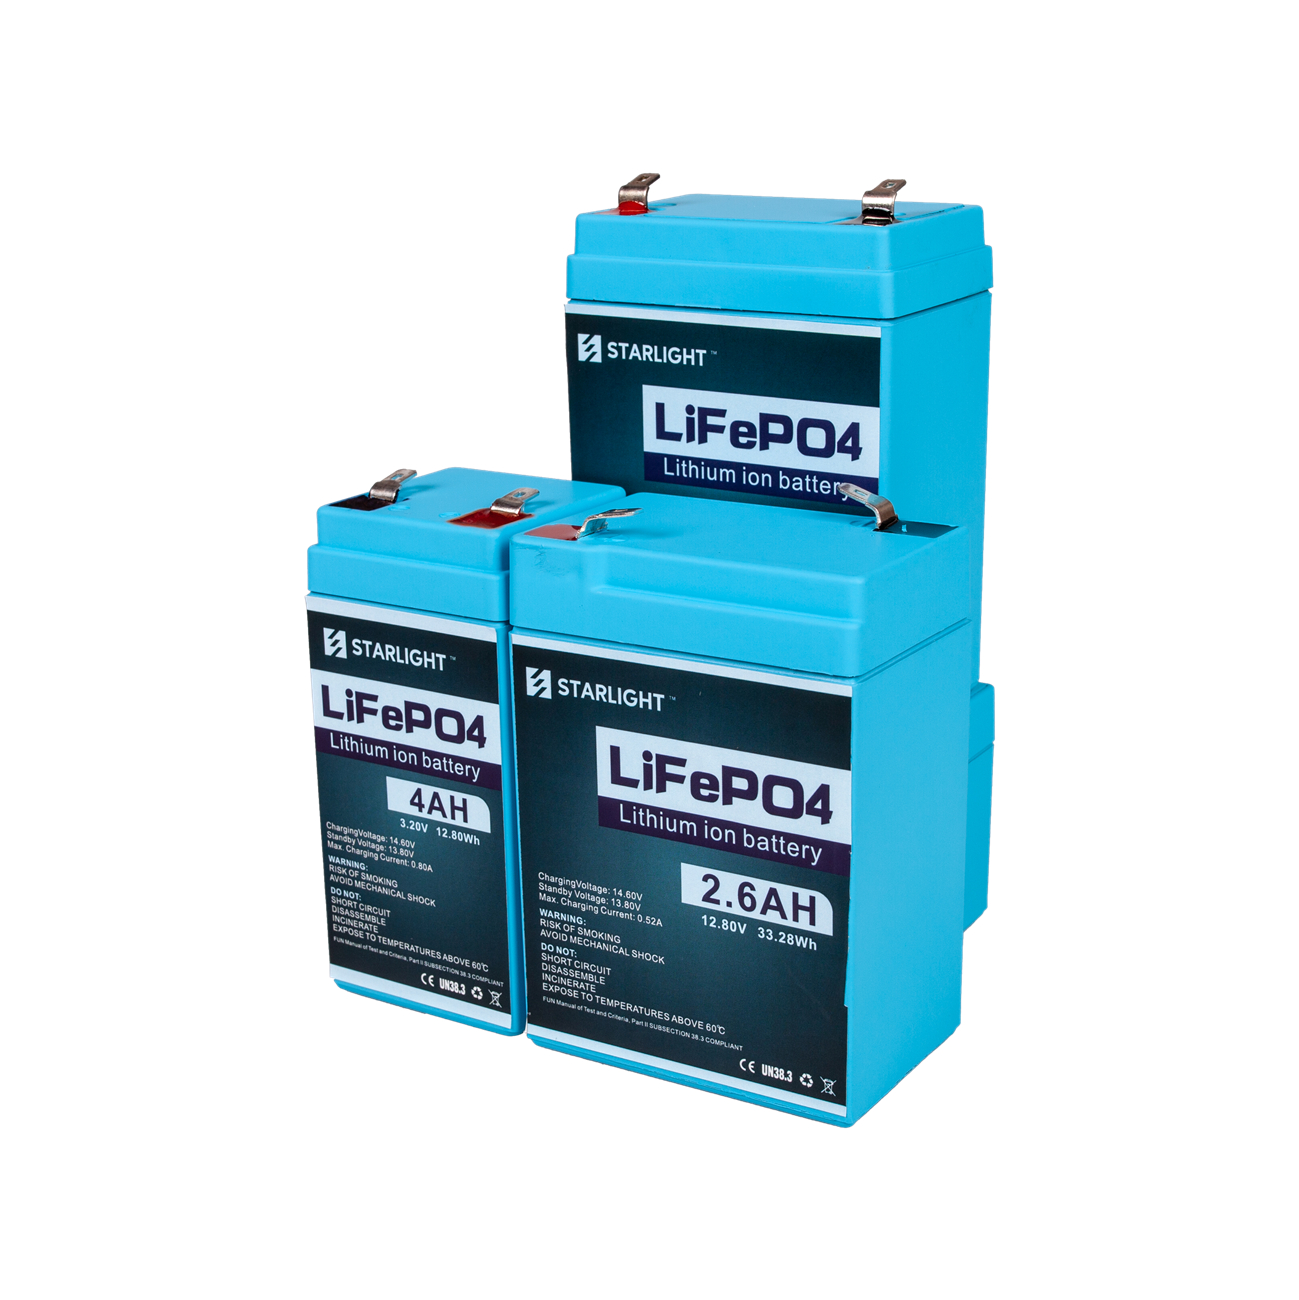 small battery lithium01